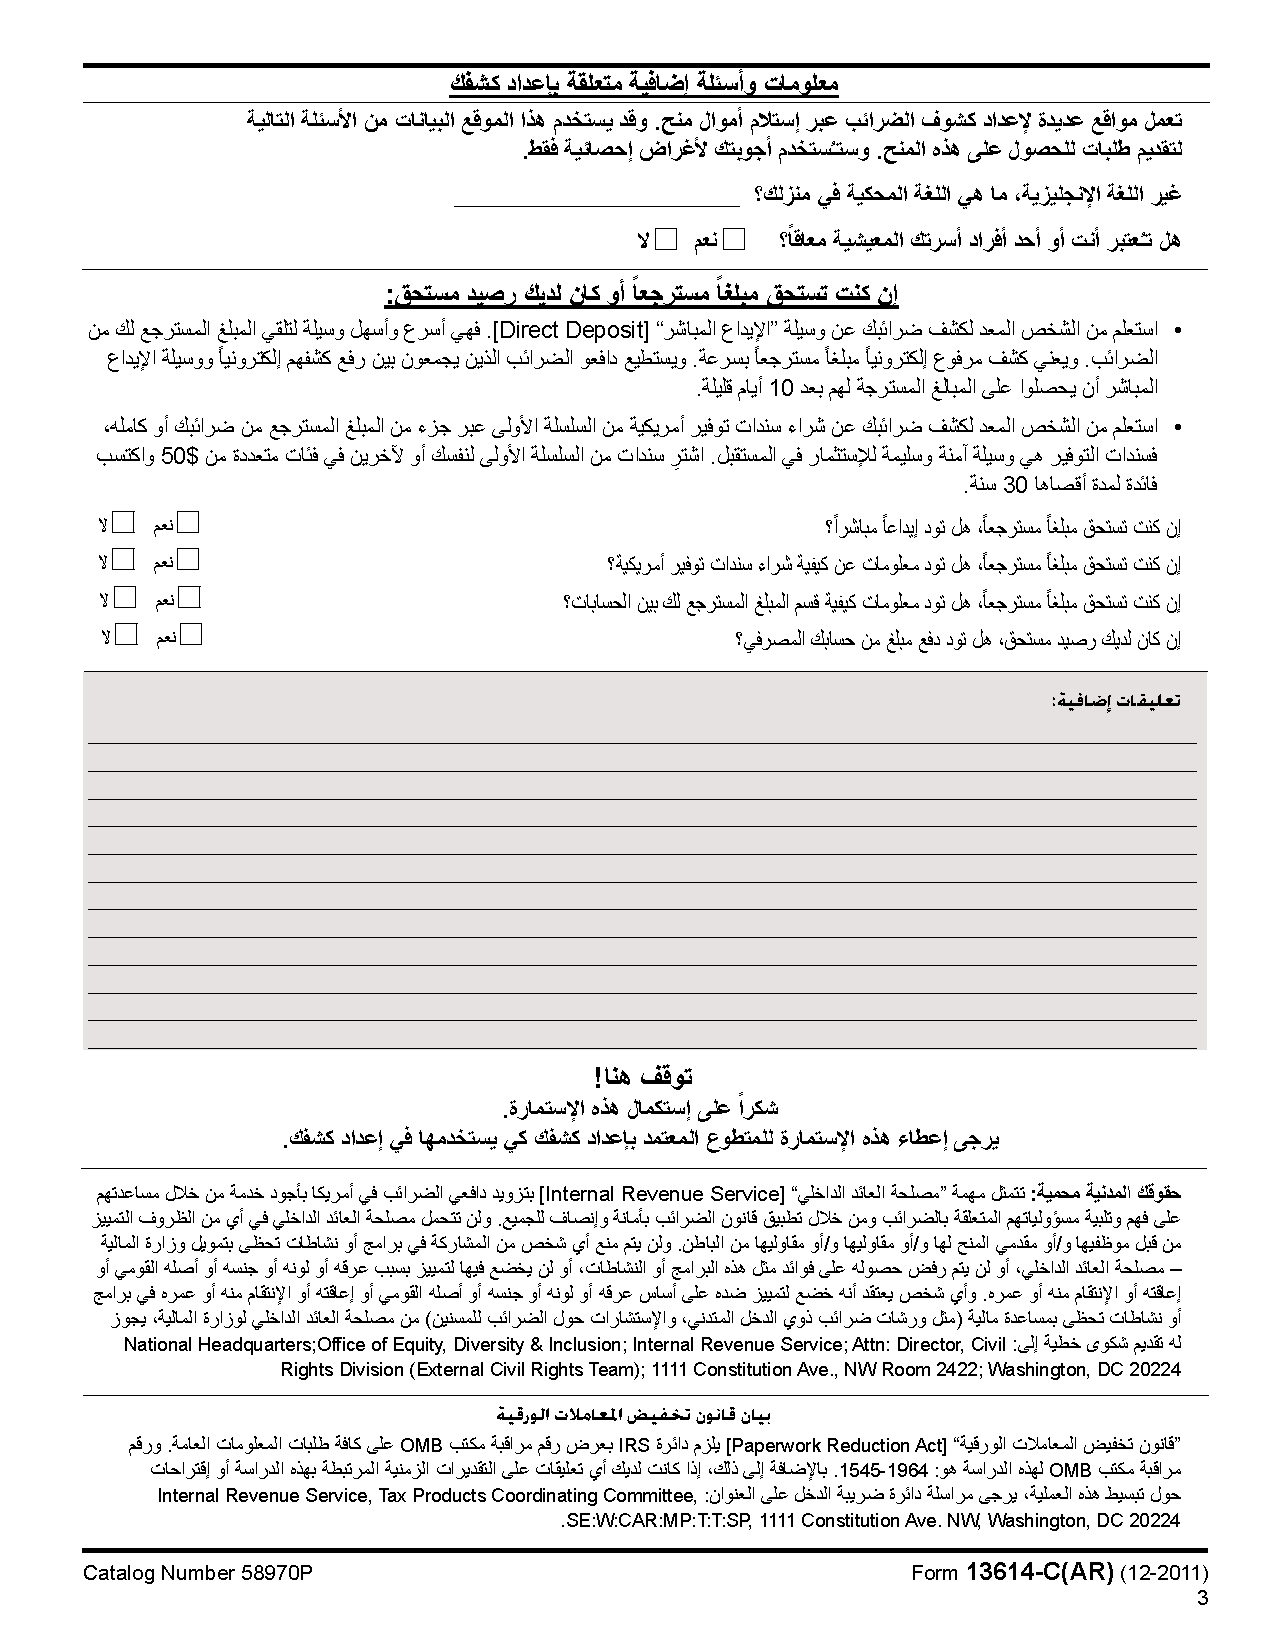 Form 13614-C (AR) Intake/Interview & Quality Review Sheet ...